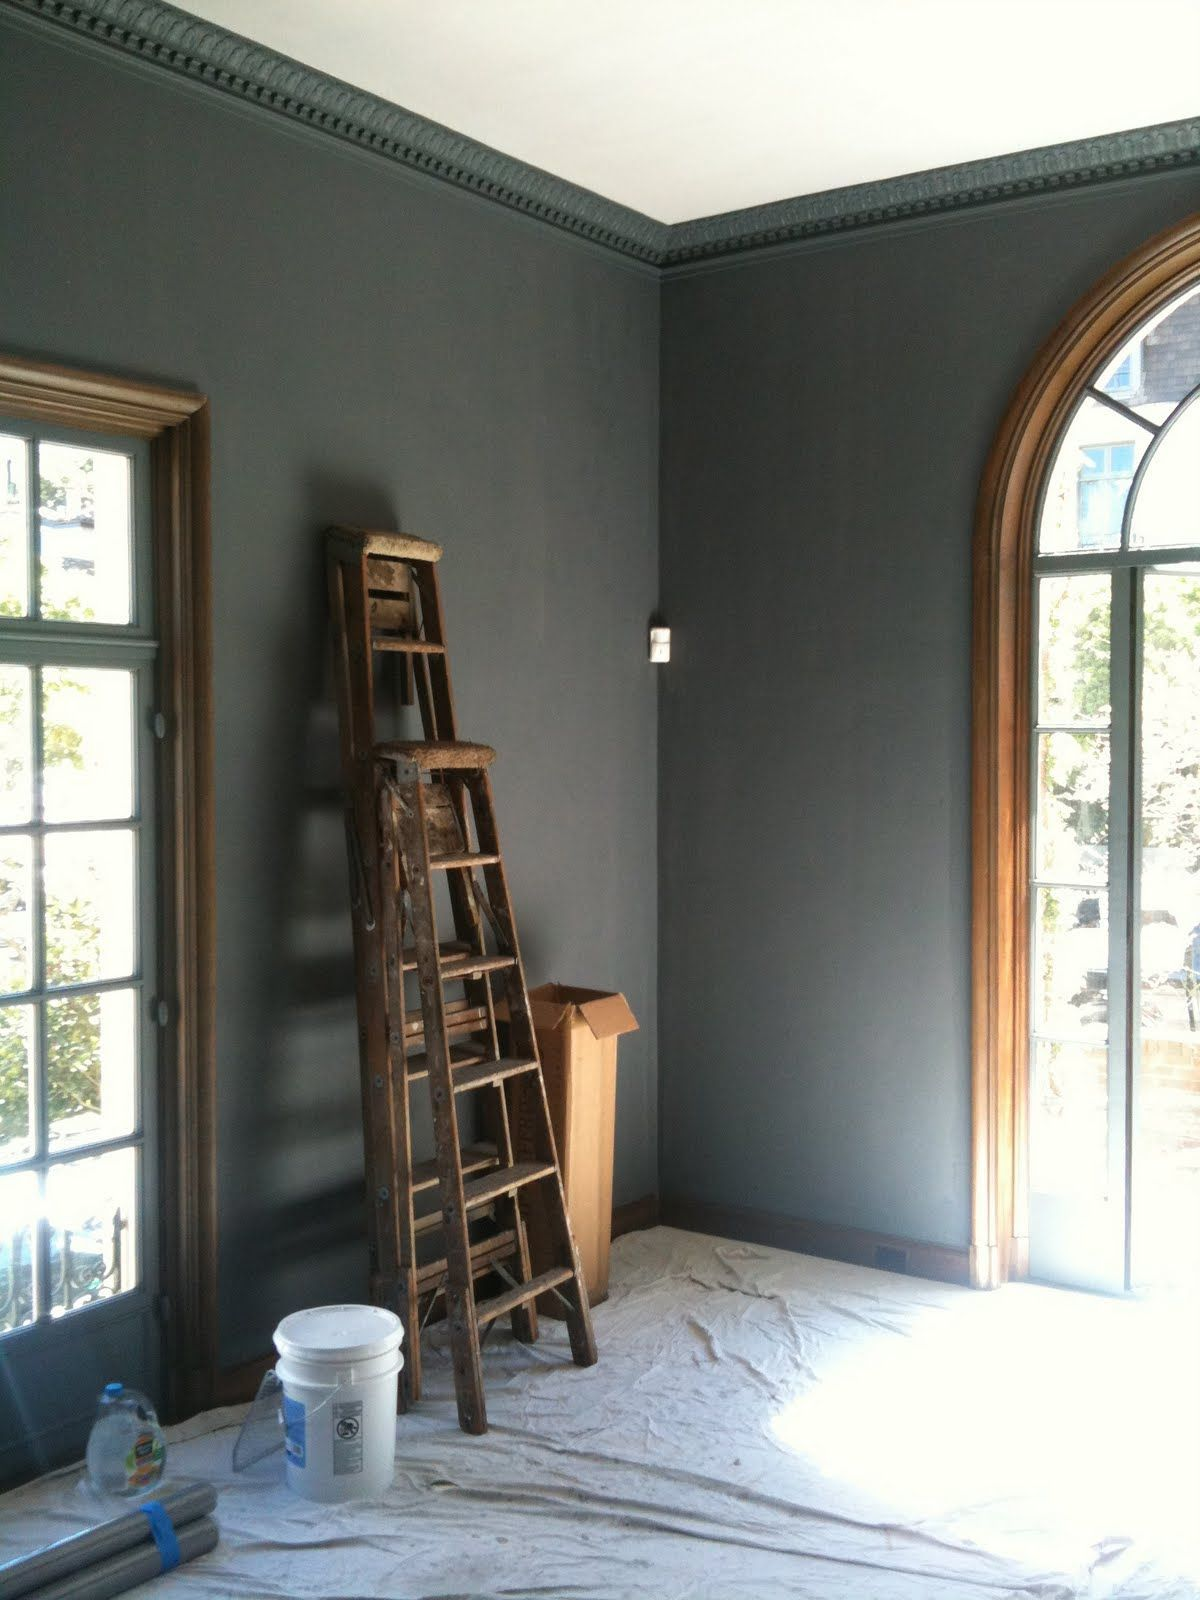 Crown molding painted the same color as the walls make